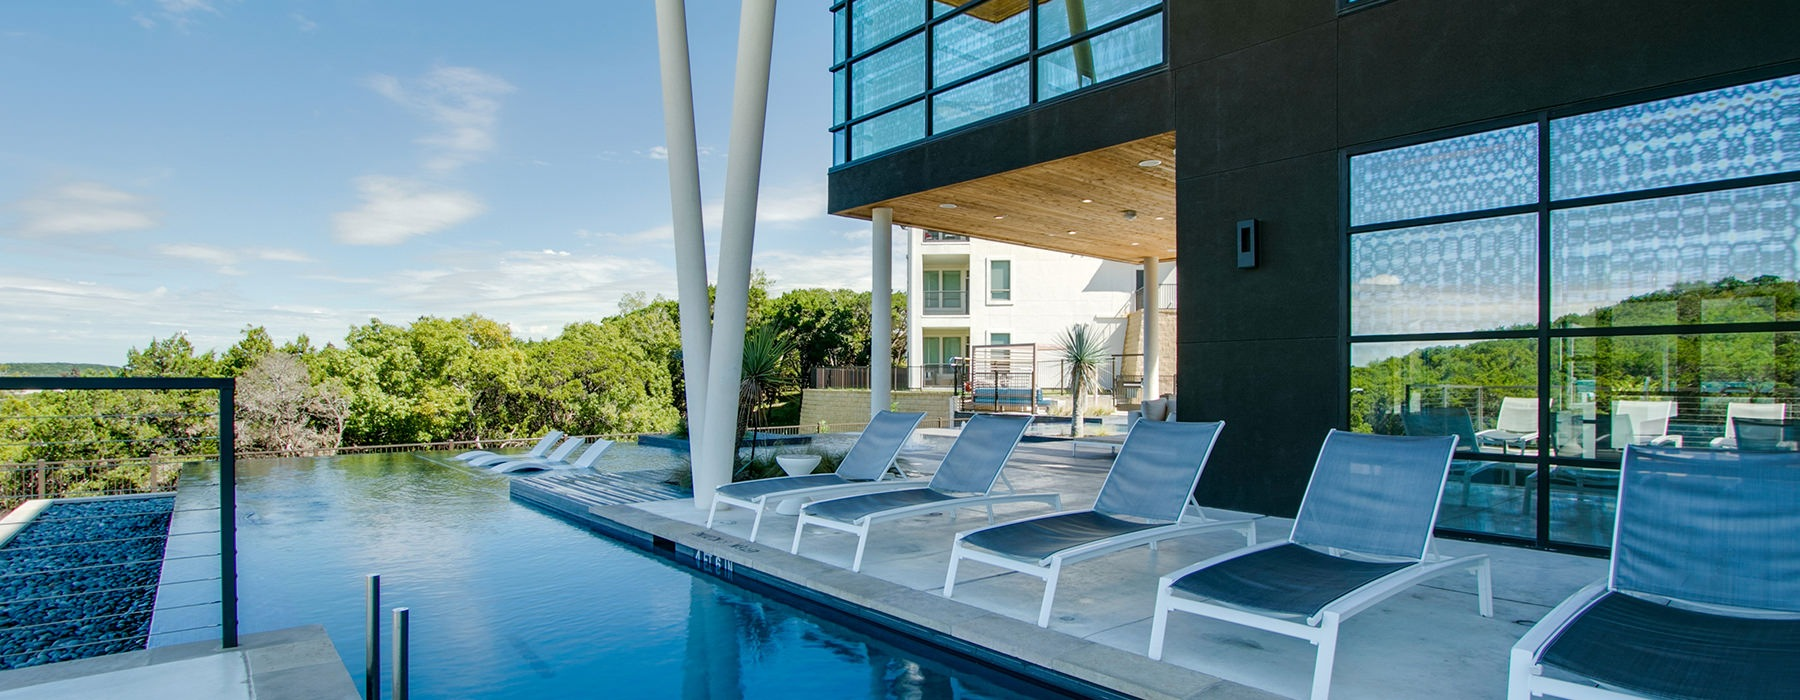 pool with lounge chairs and views